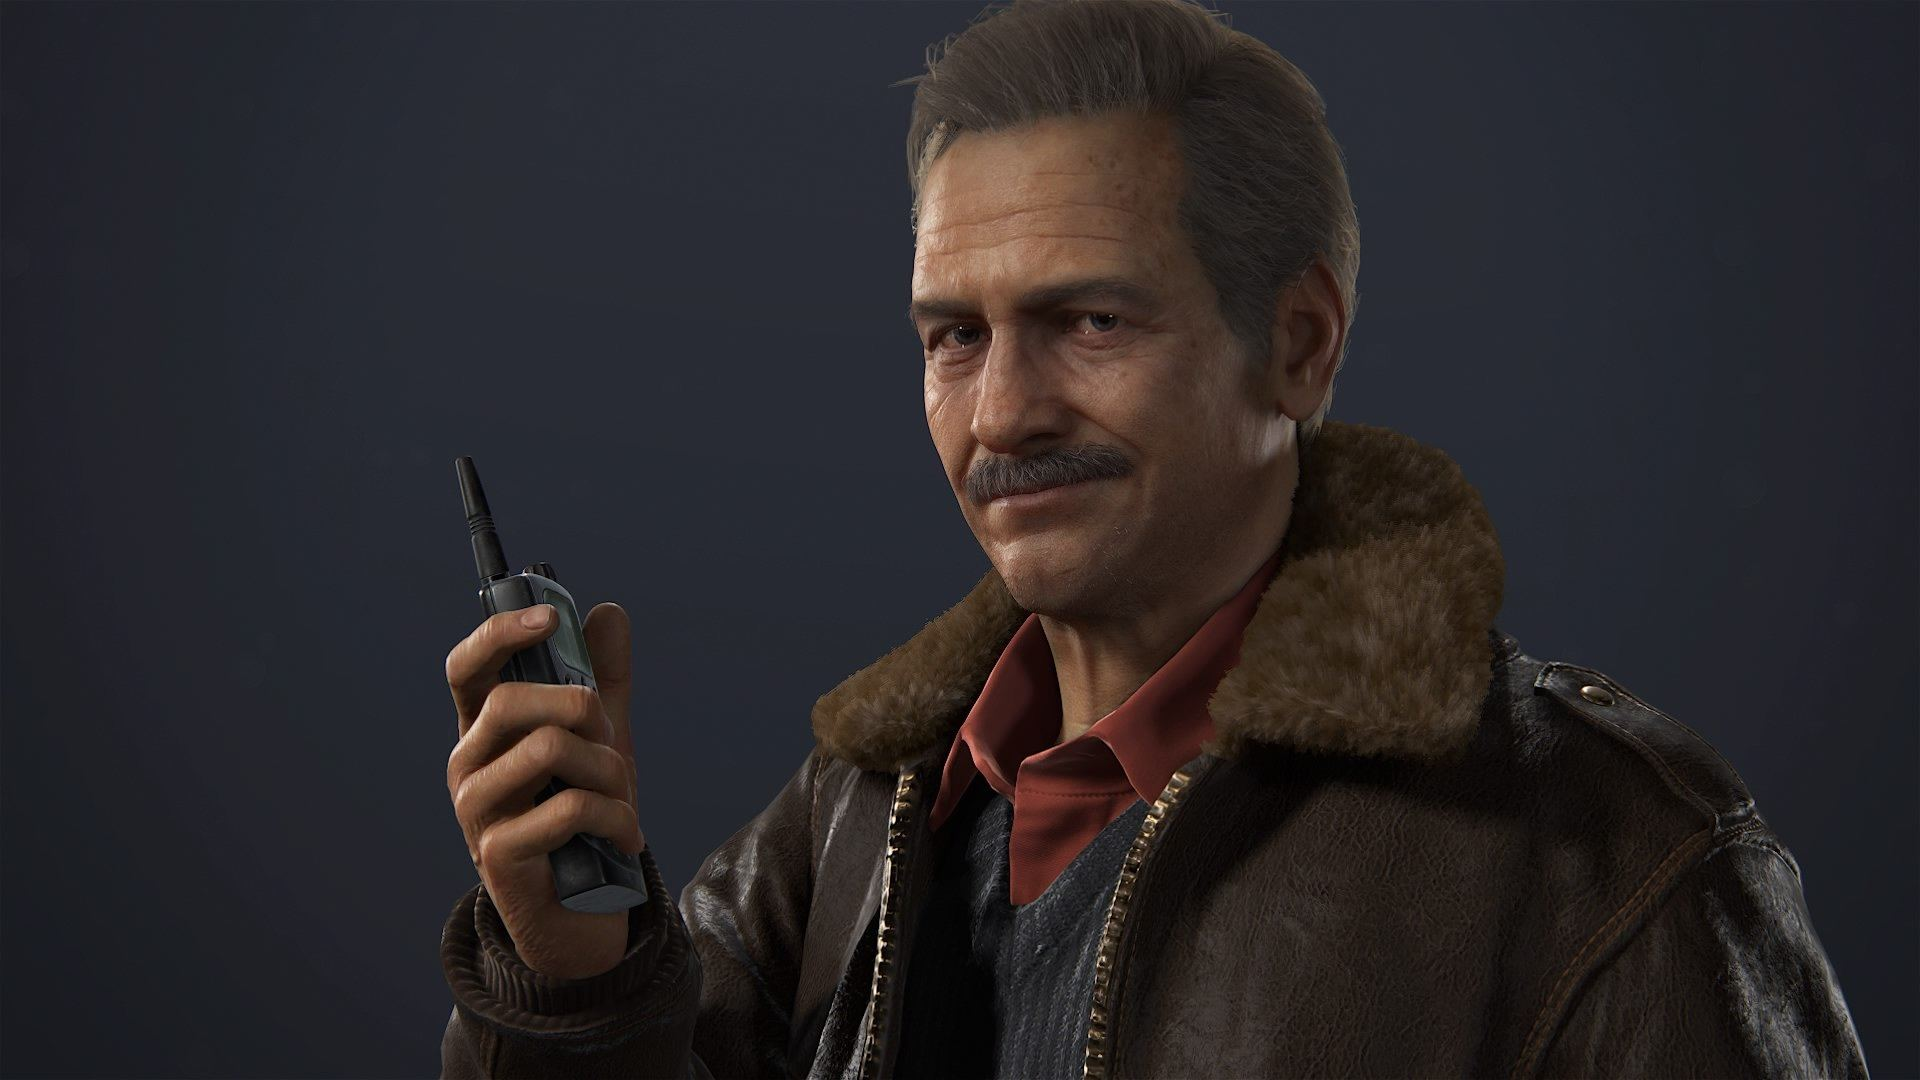 The Gorgeous Mustache of Mark Wahlberg's Uncharted's Sully